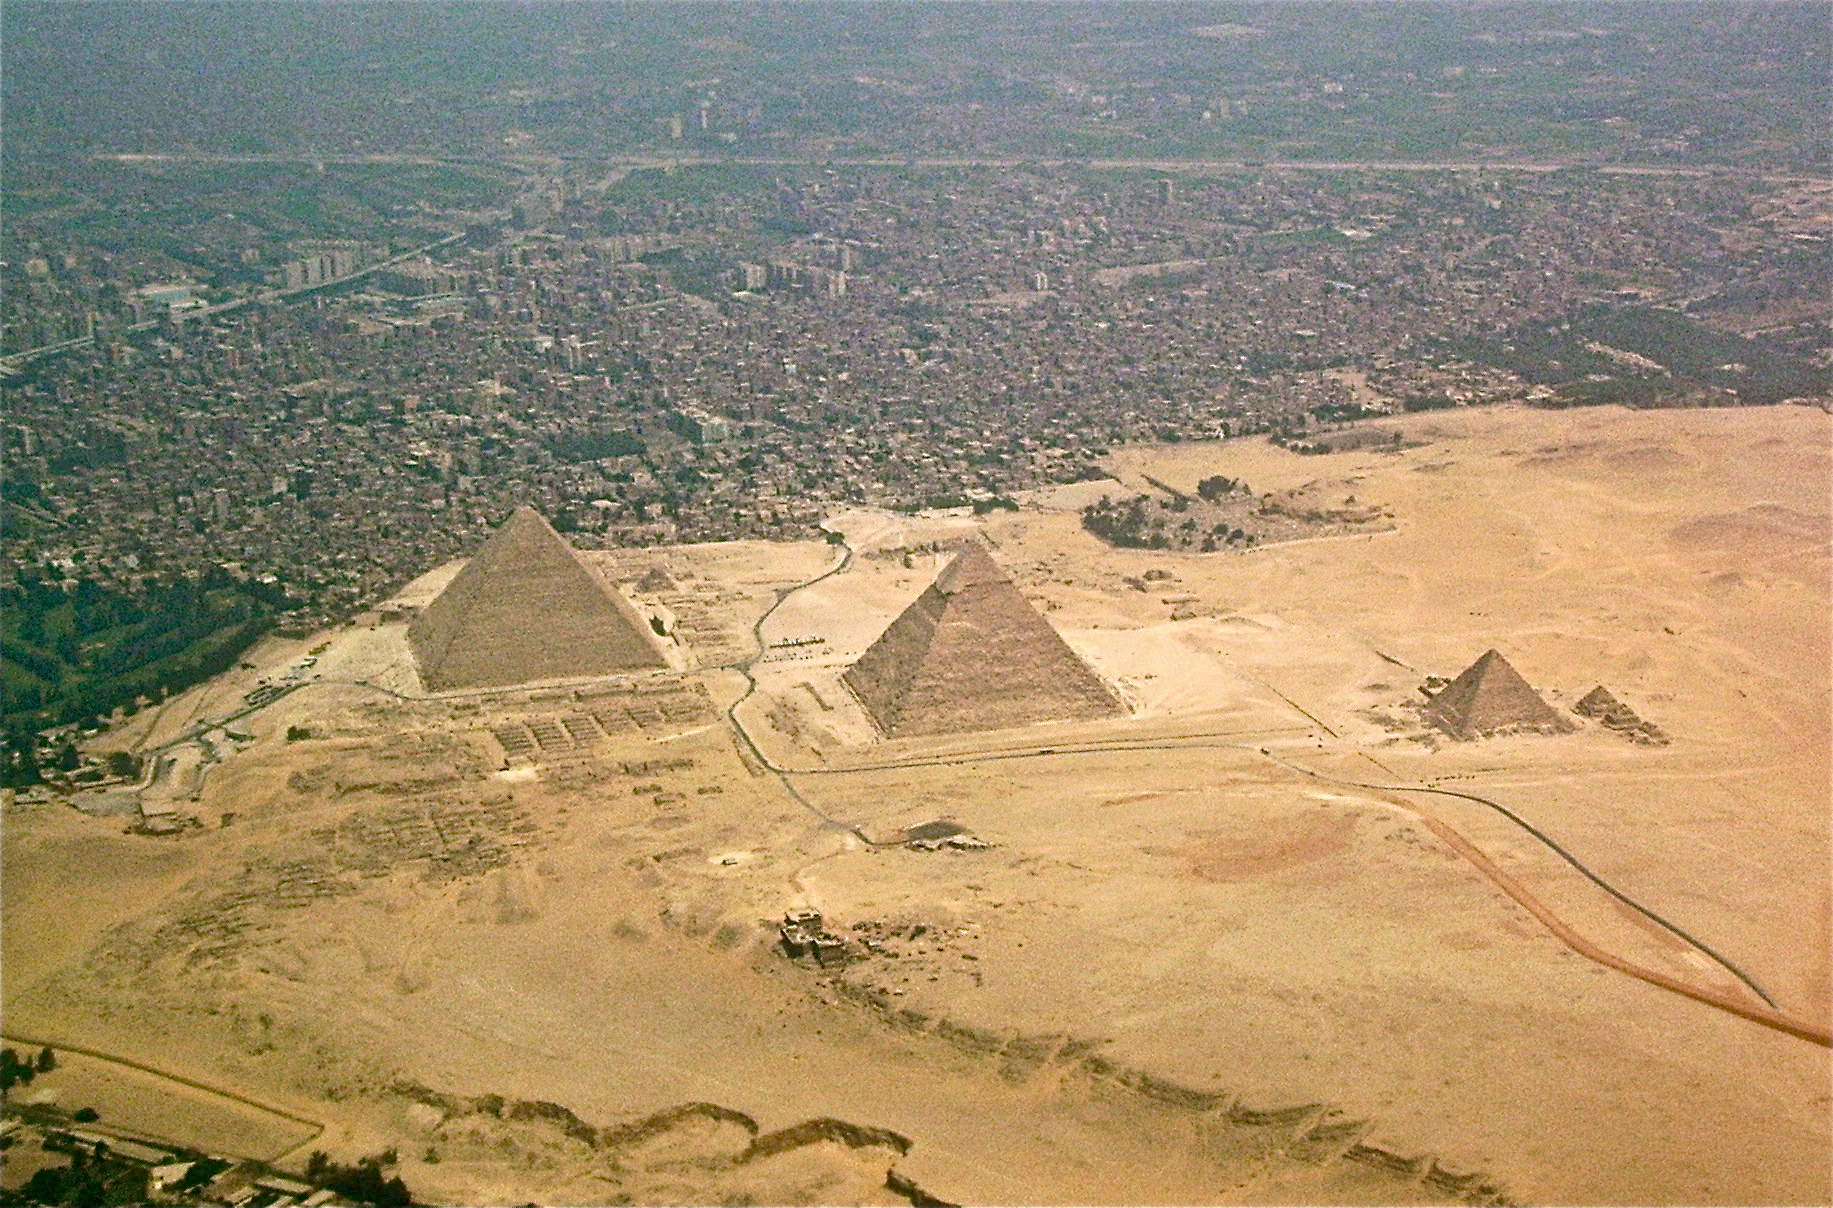 the pyramids of giza aerial view illustration ancient history